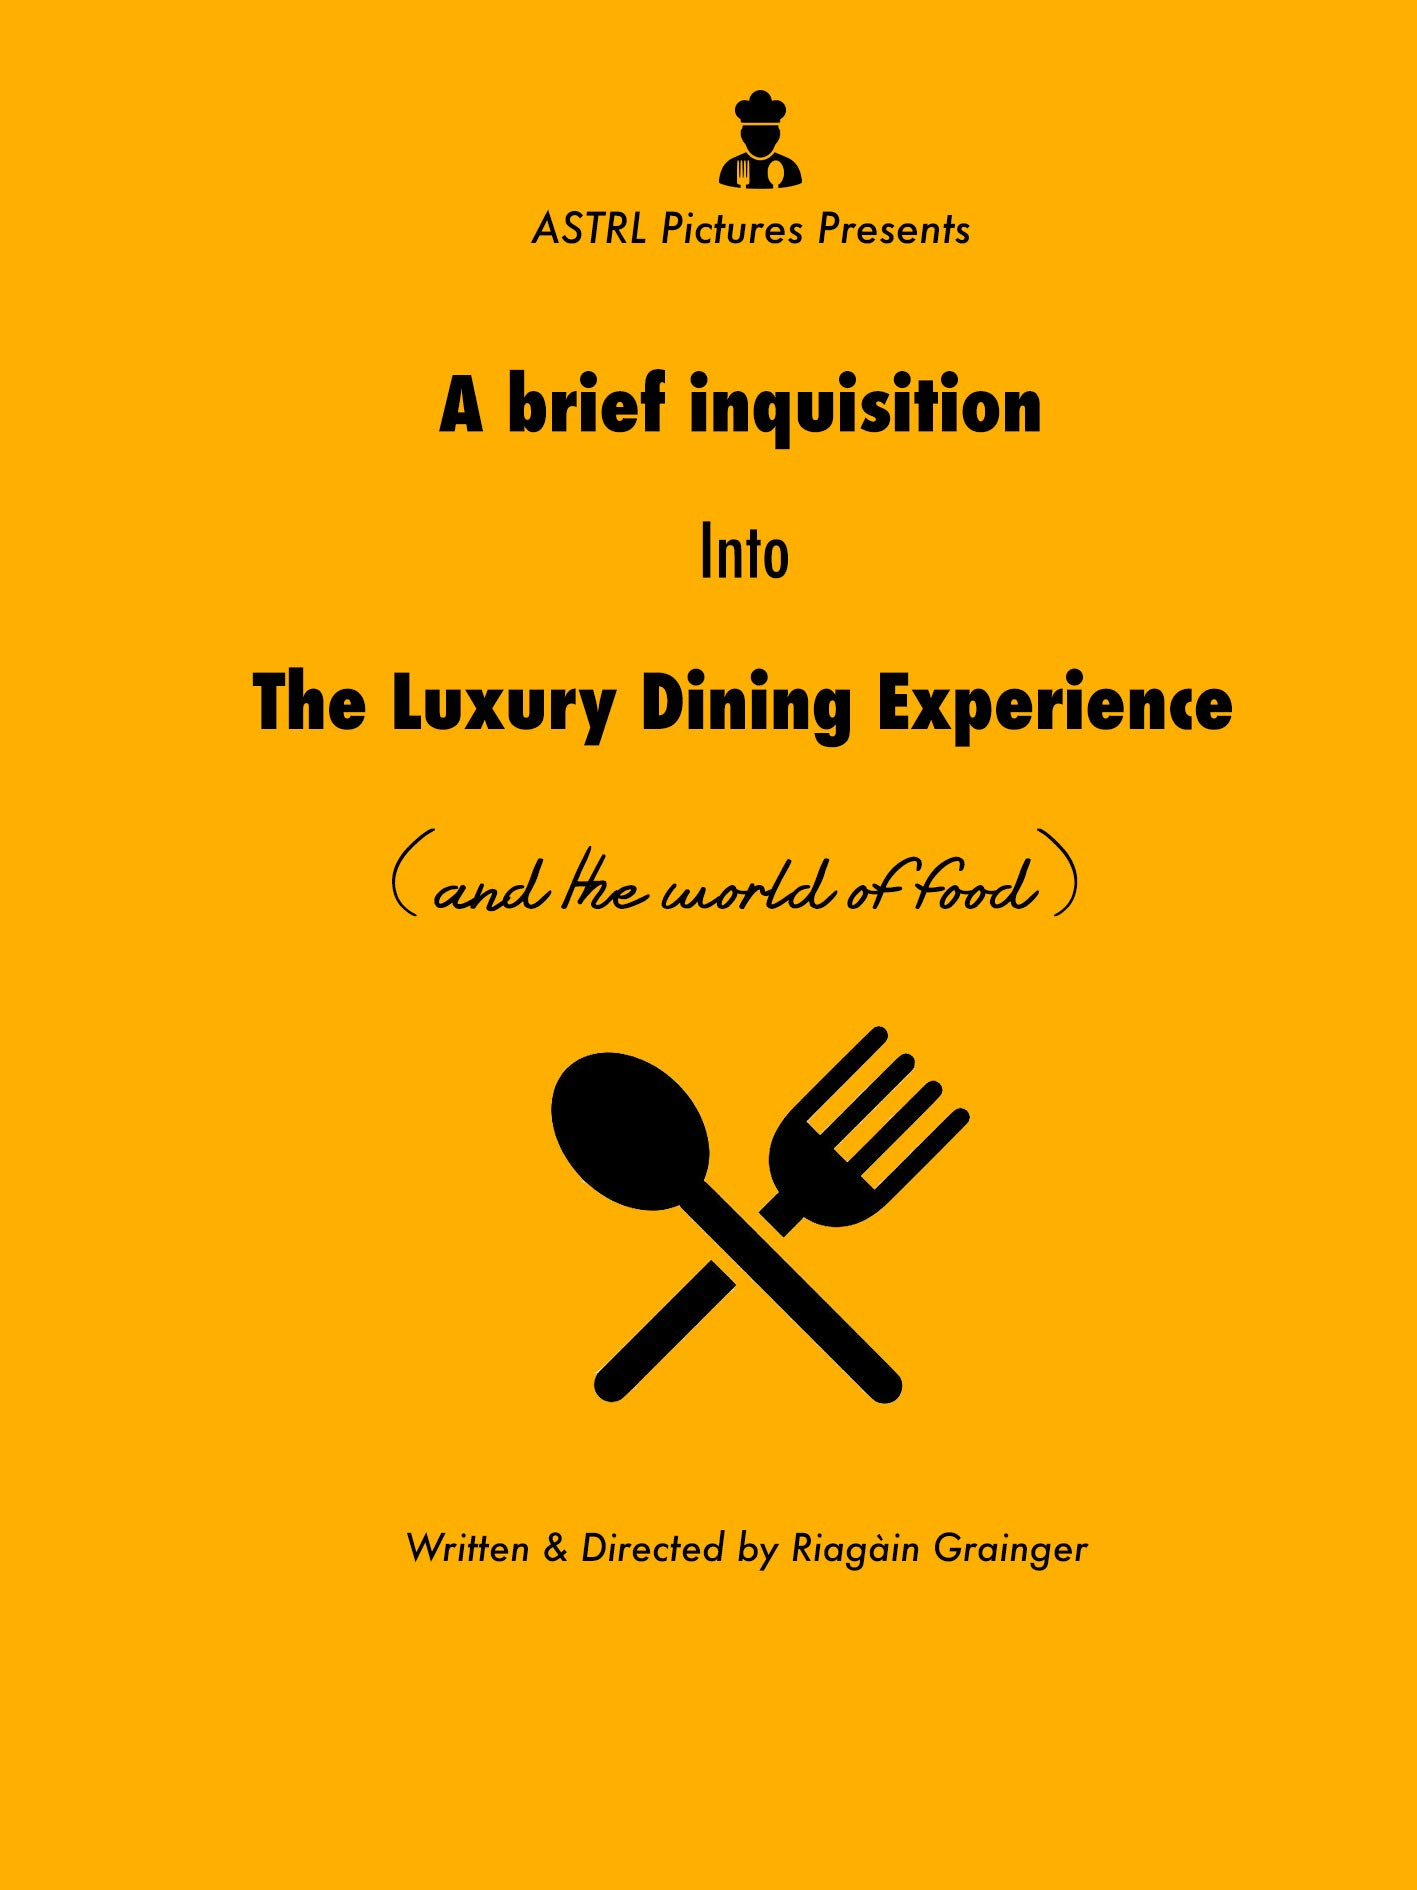 A brief inquisition into the Luxury Dining Experience (and the world of food)